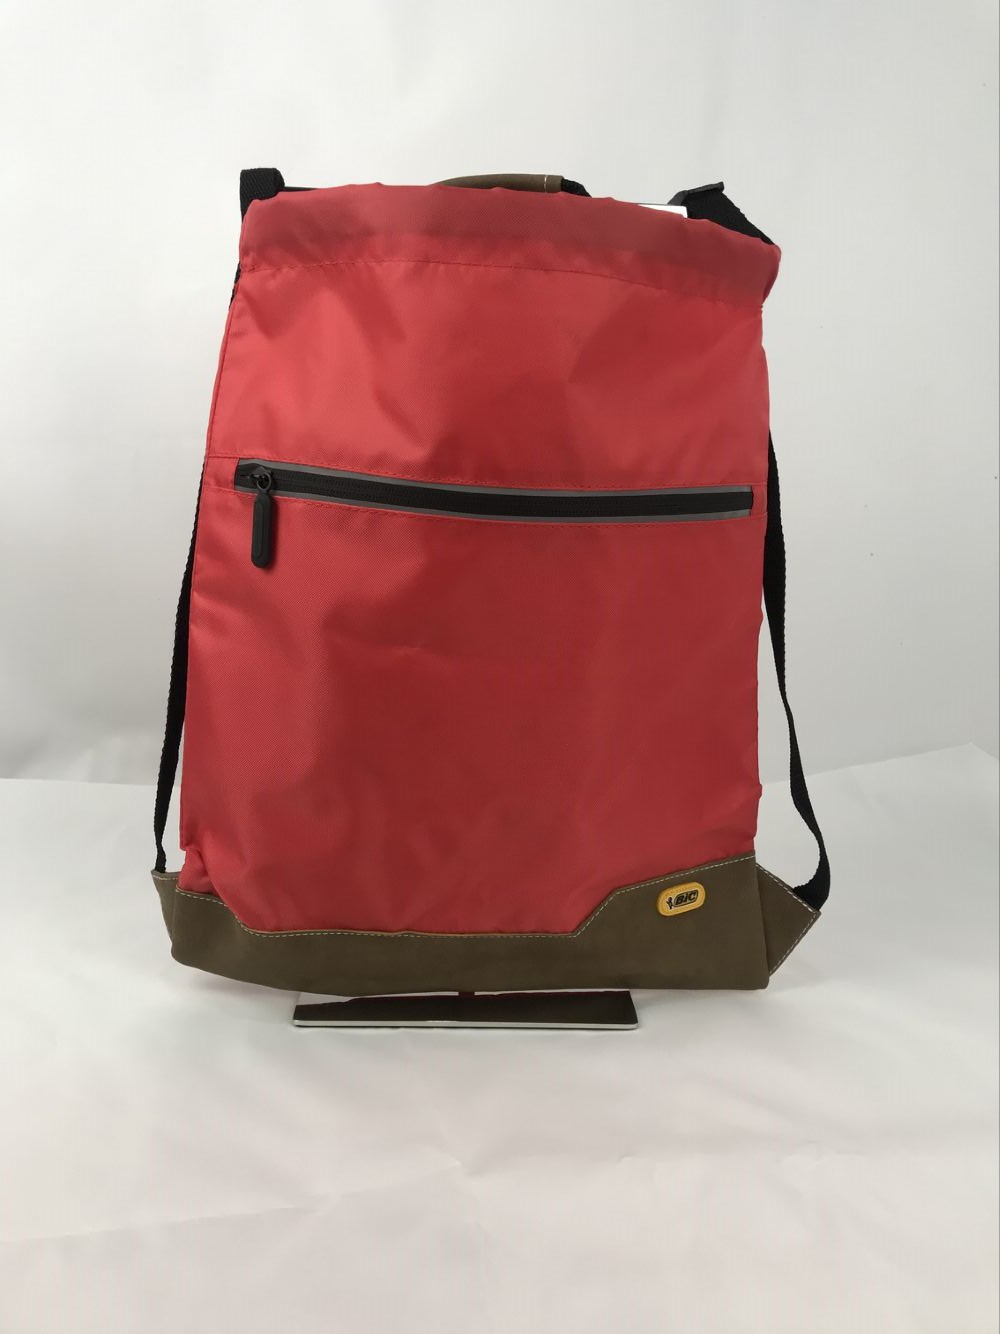 Art backpack basketball football backpack work bag simple outdoor backpack lightweight leisure mountaineering bag